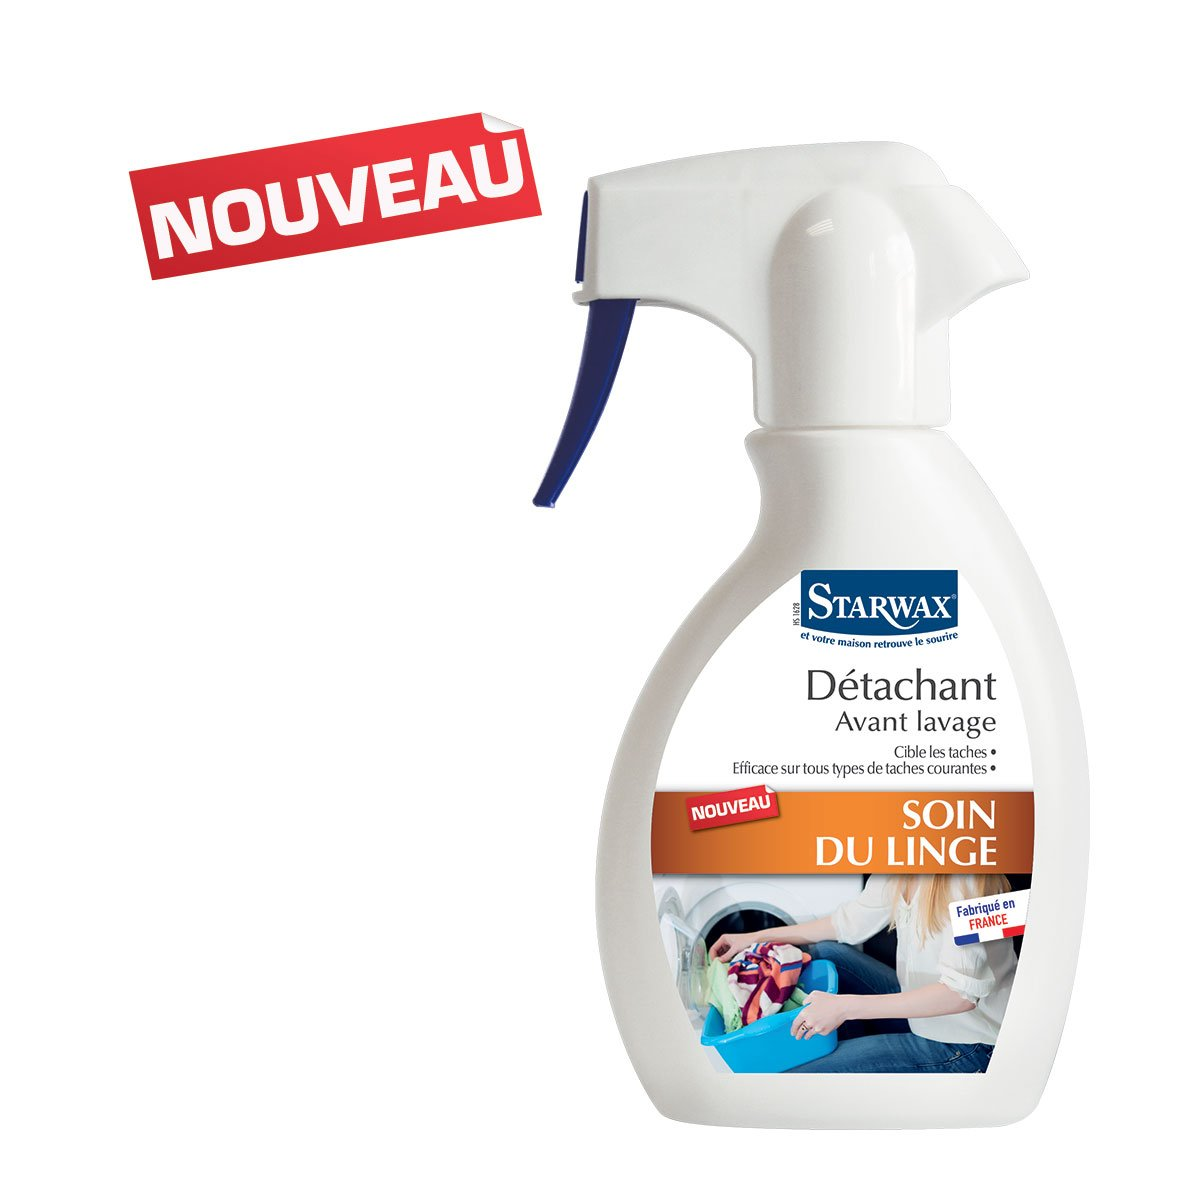 Détachant Avant lavage